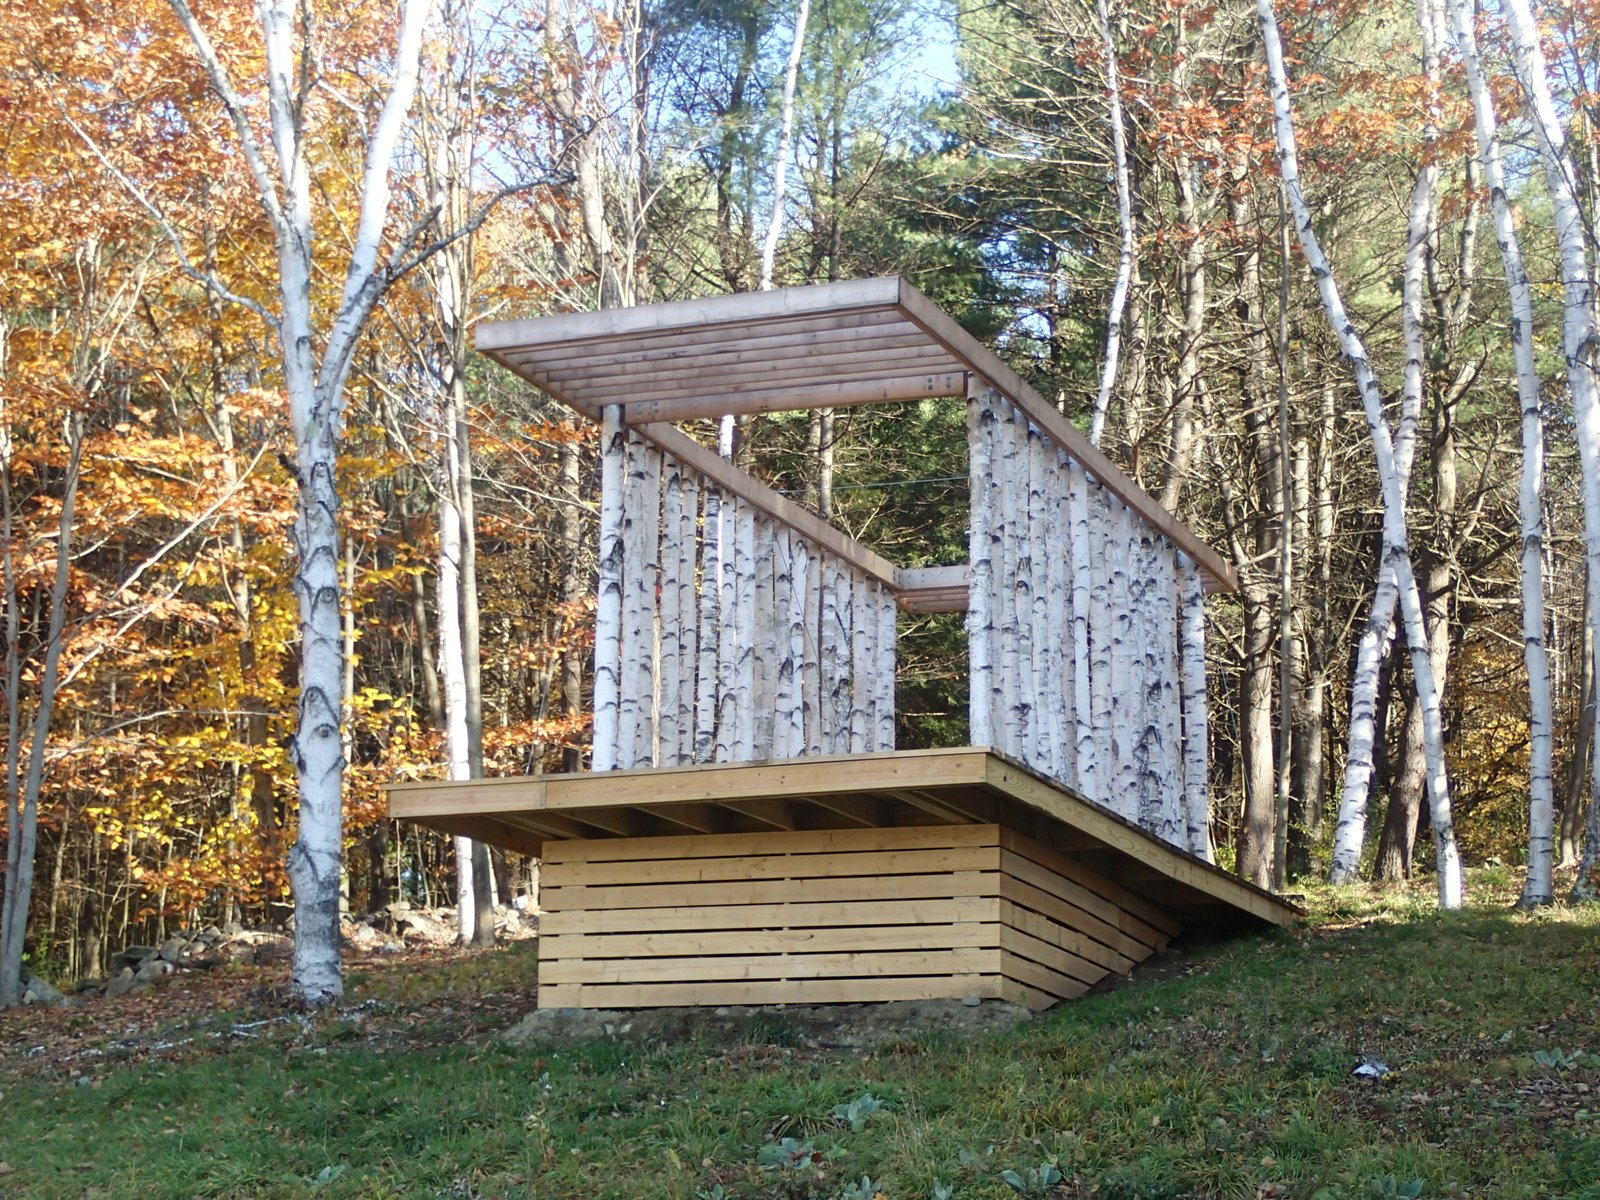 Construction of the pavilion was completed in the summer of 2013. Photo courtesy of Moskow Linn Architects.  Photo 6 of 7 in Aspiring Architects Build a Pavilion in the Vermont Forest